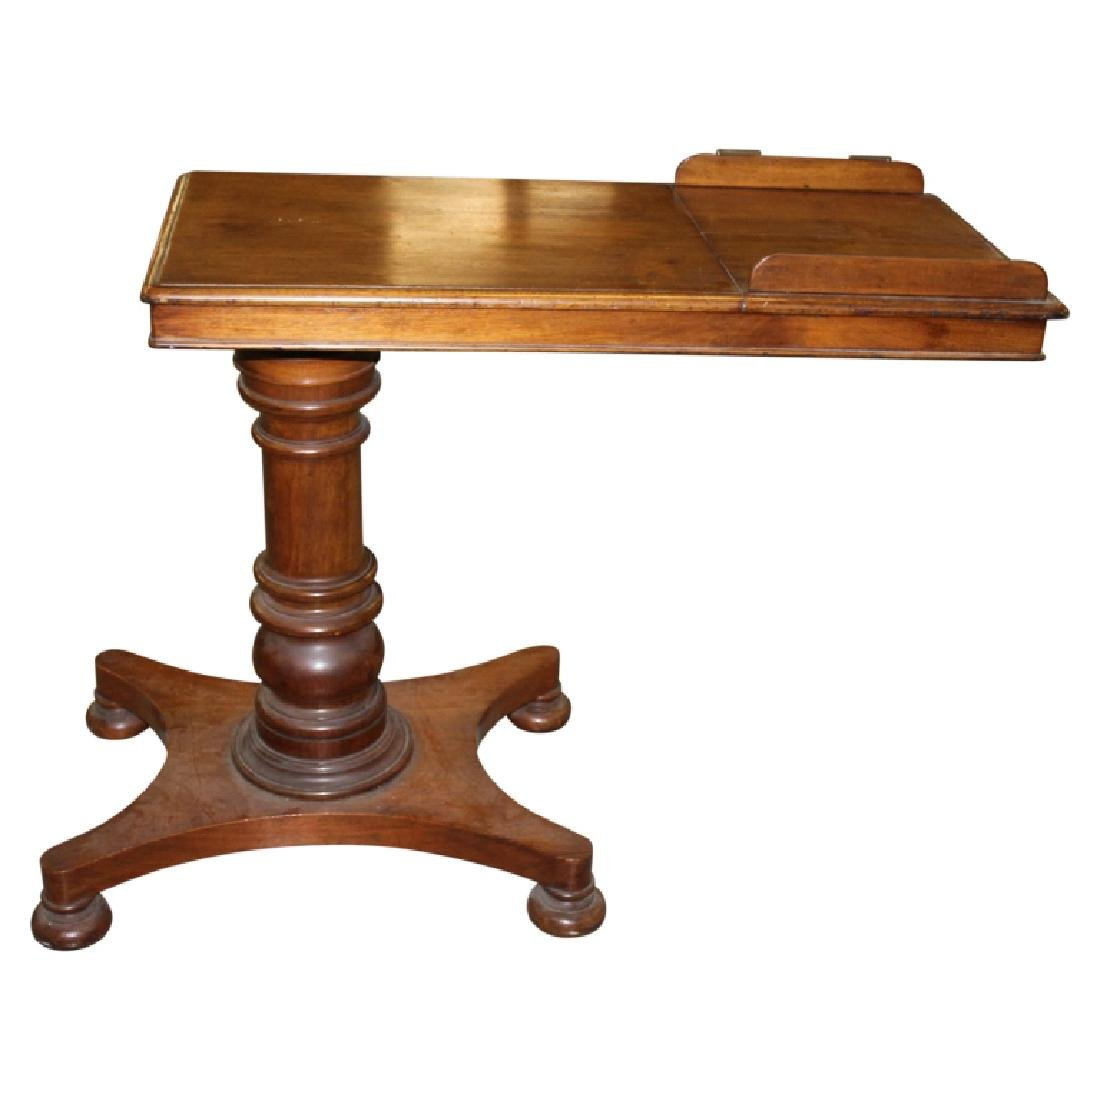 Early English Bedside Table